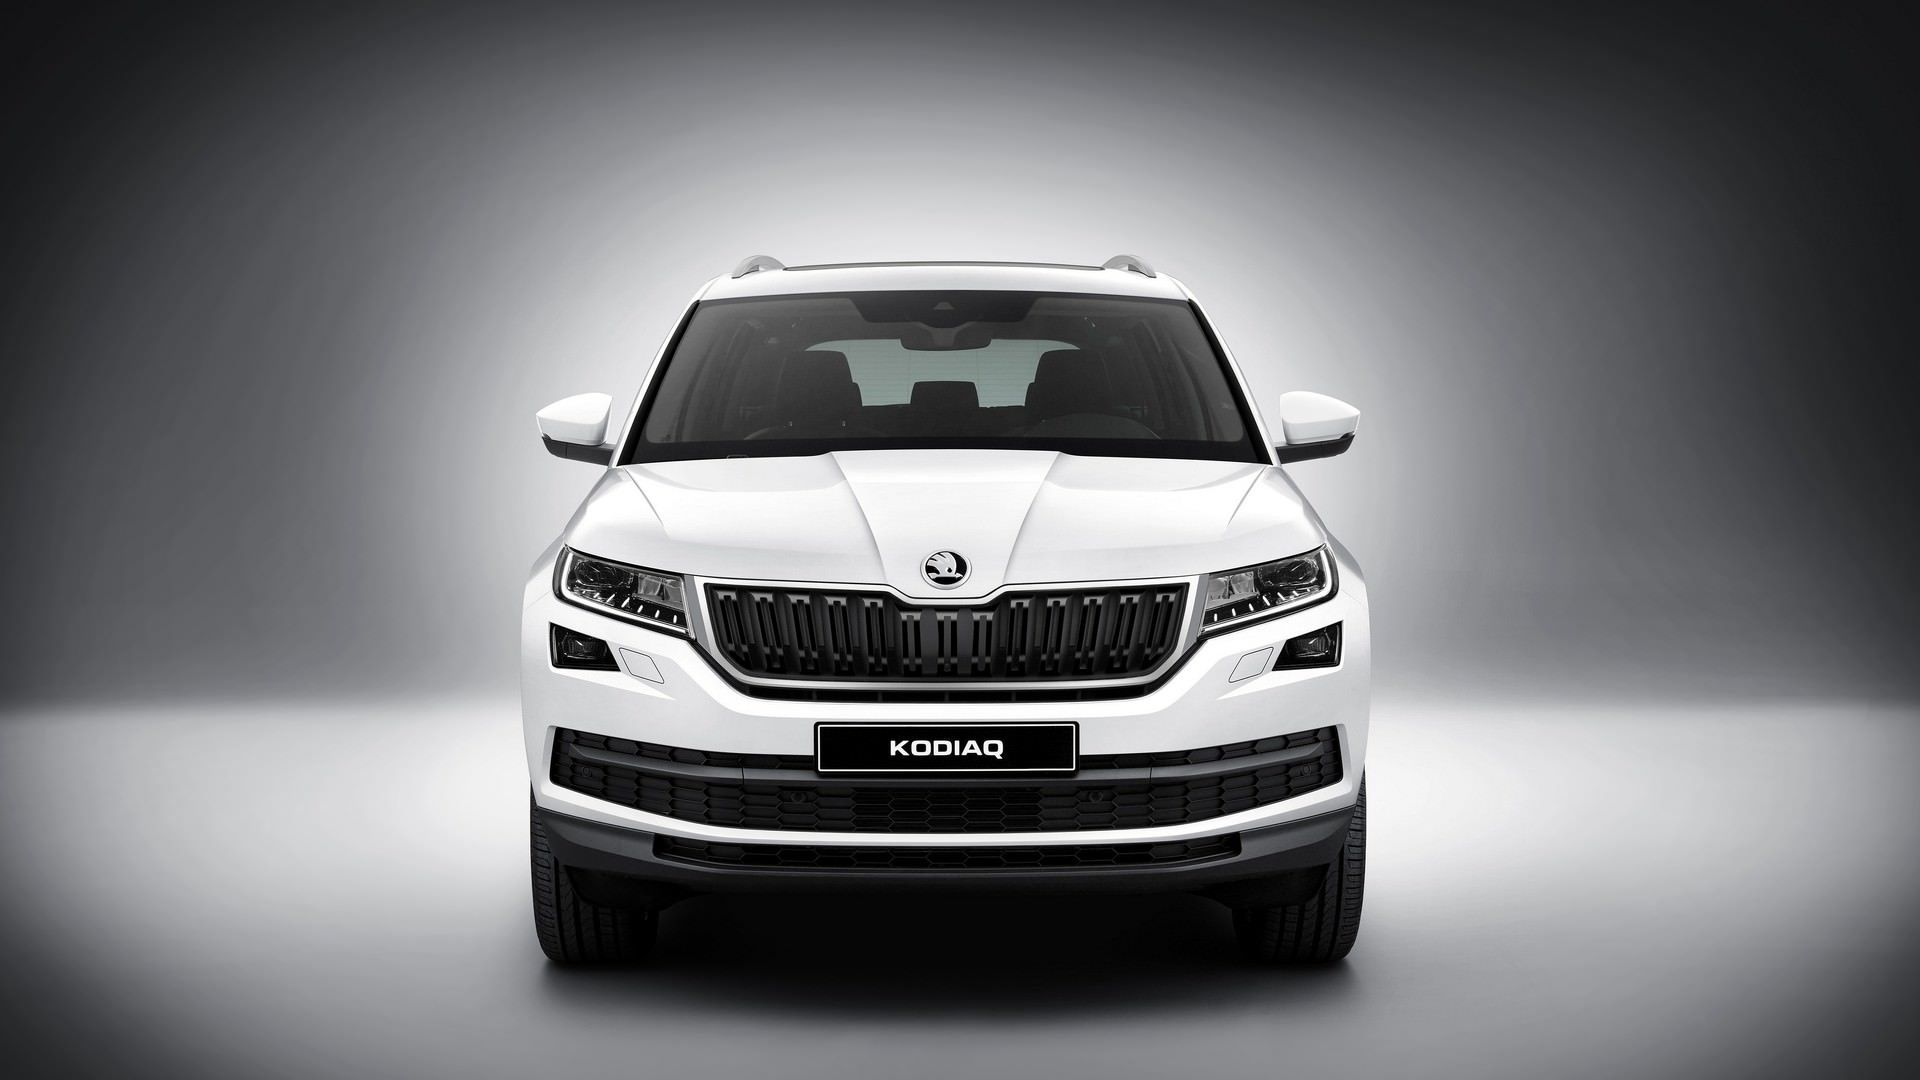 Skoda's first SUV Kodiaq is now official in India; you can book one for Rs 51,000